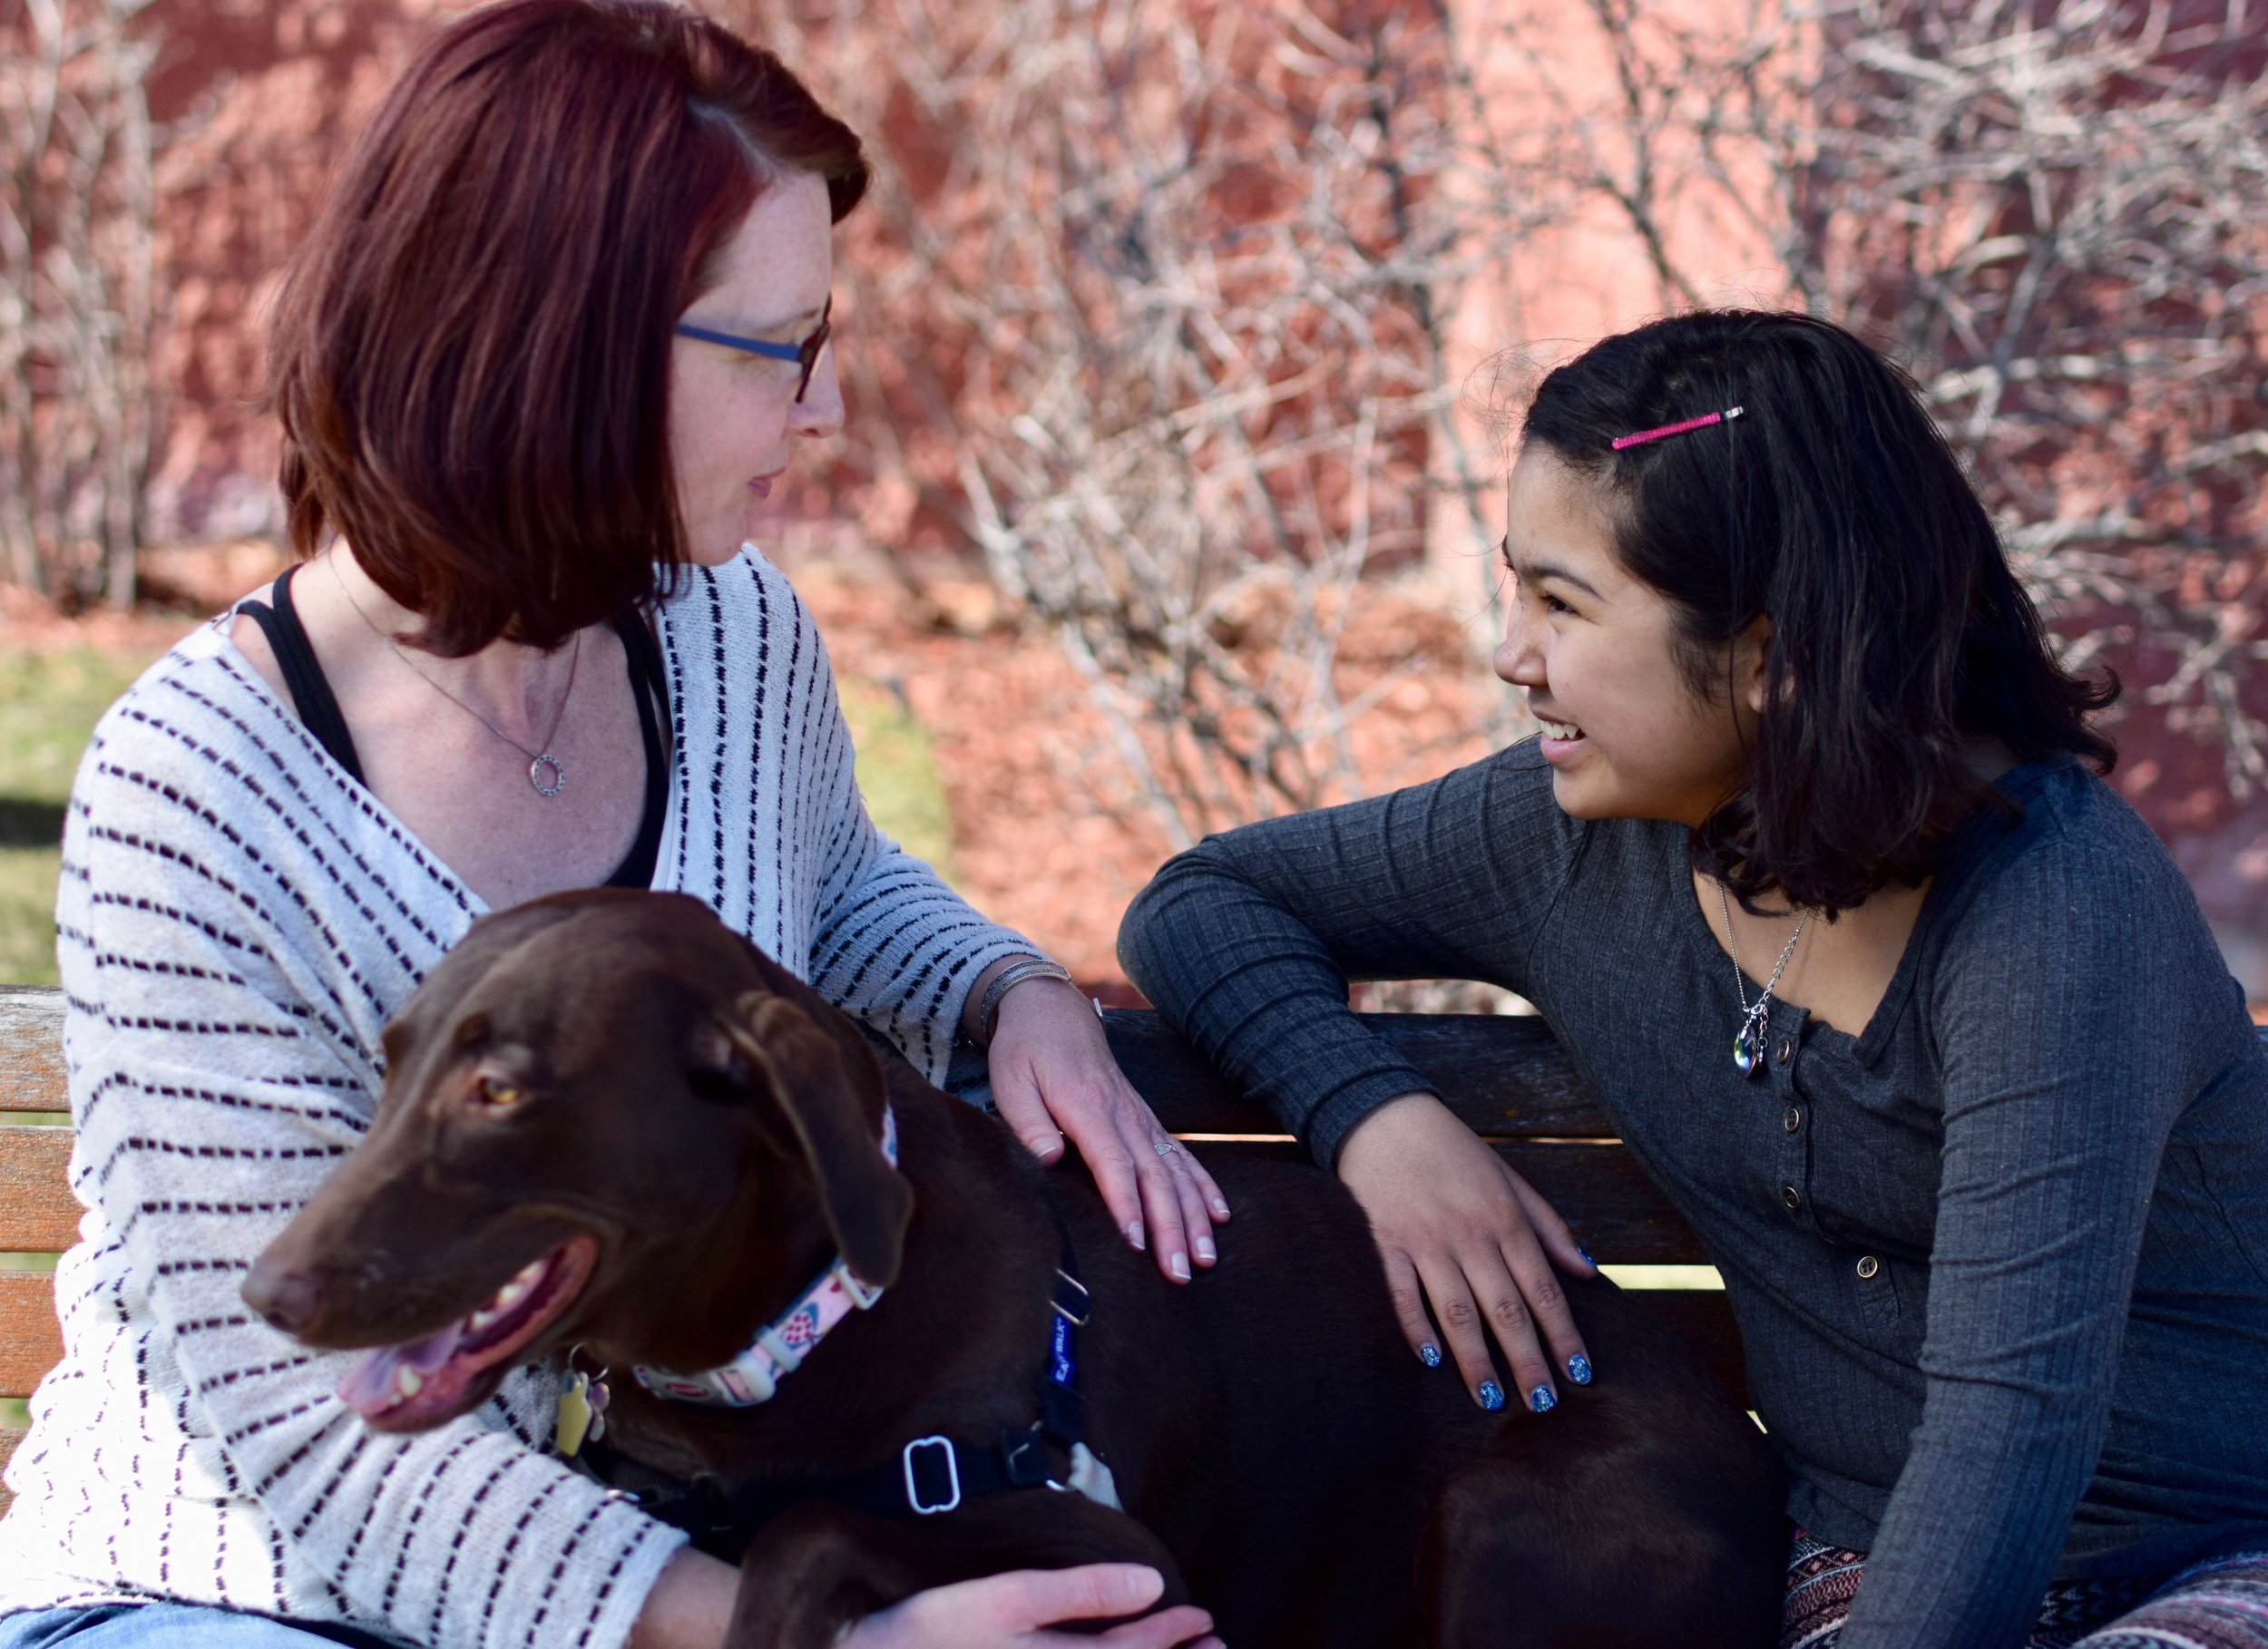 Canine counseling partner